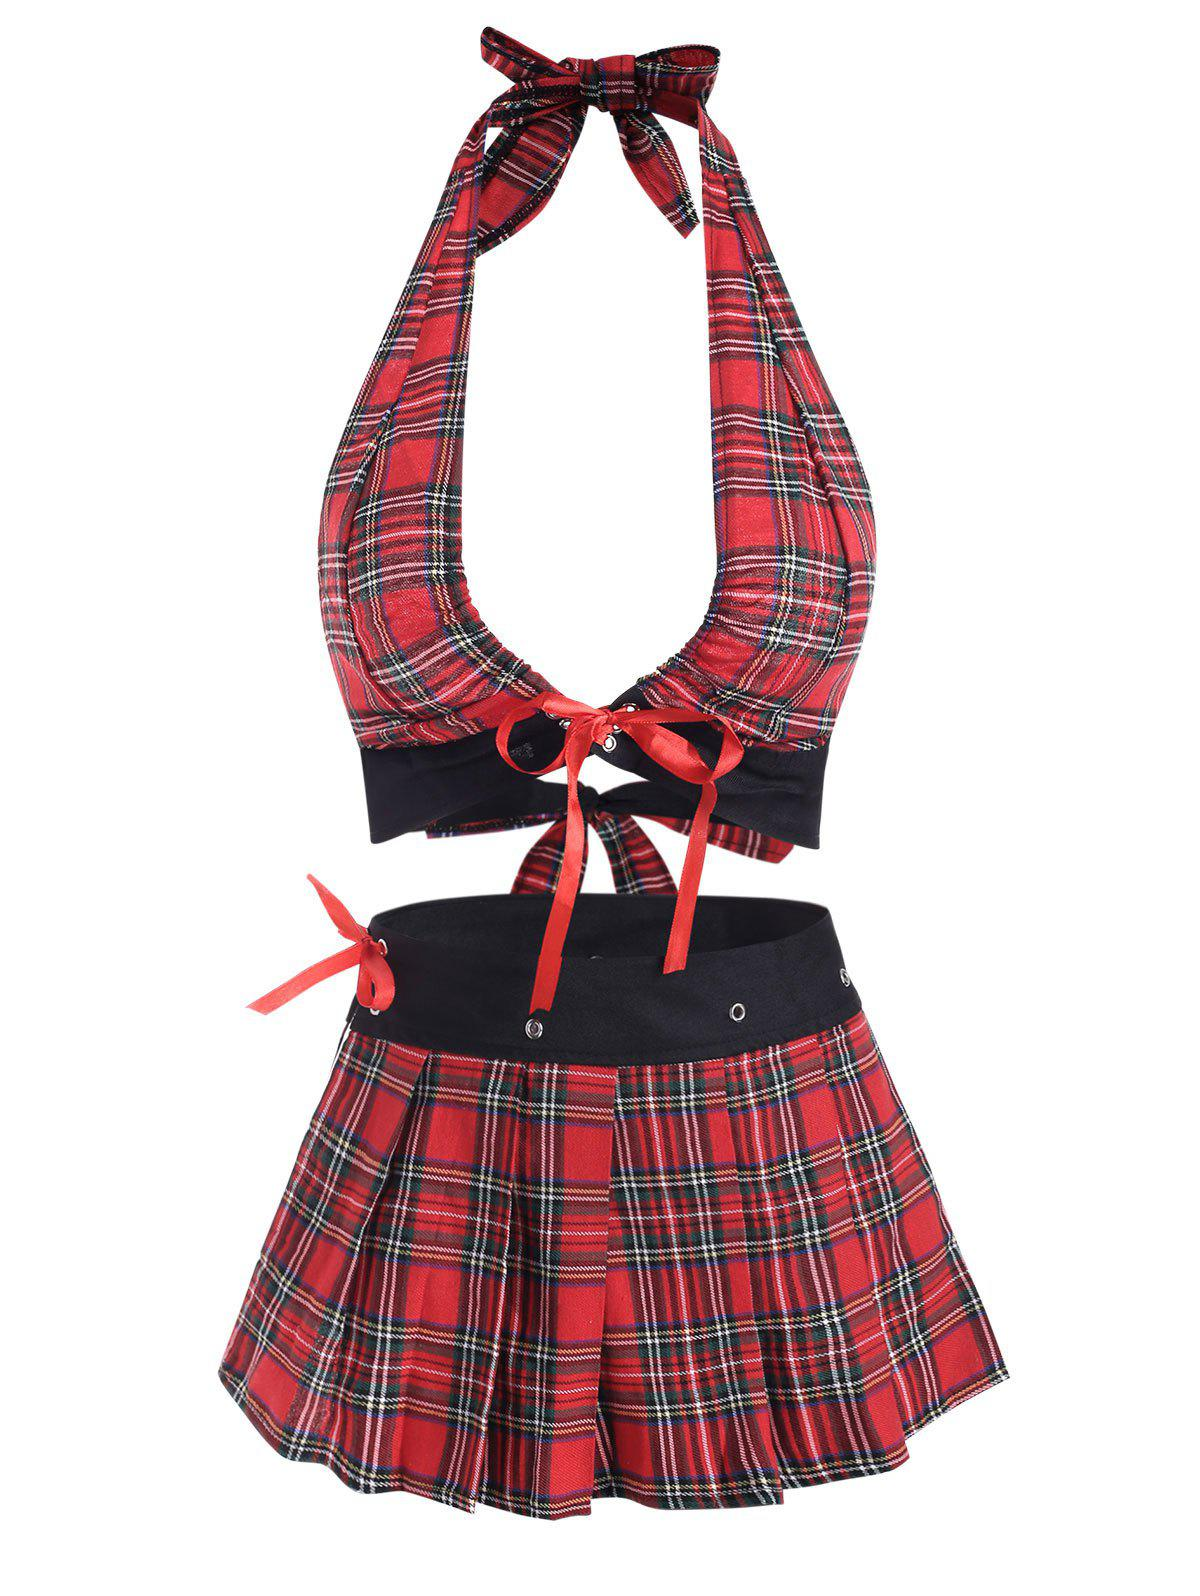 Tartan Plaid Lace Up Tie Back Plus Size Lingerie Set - RED XL